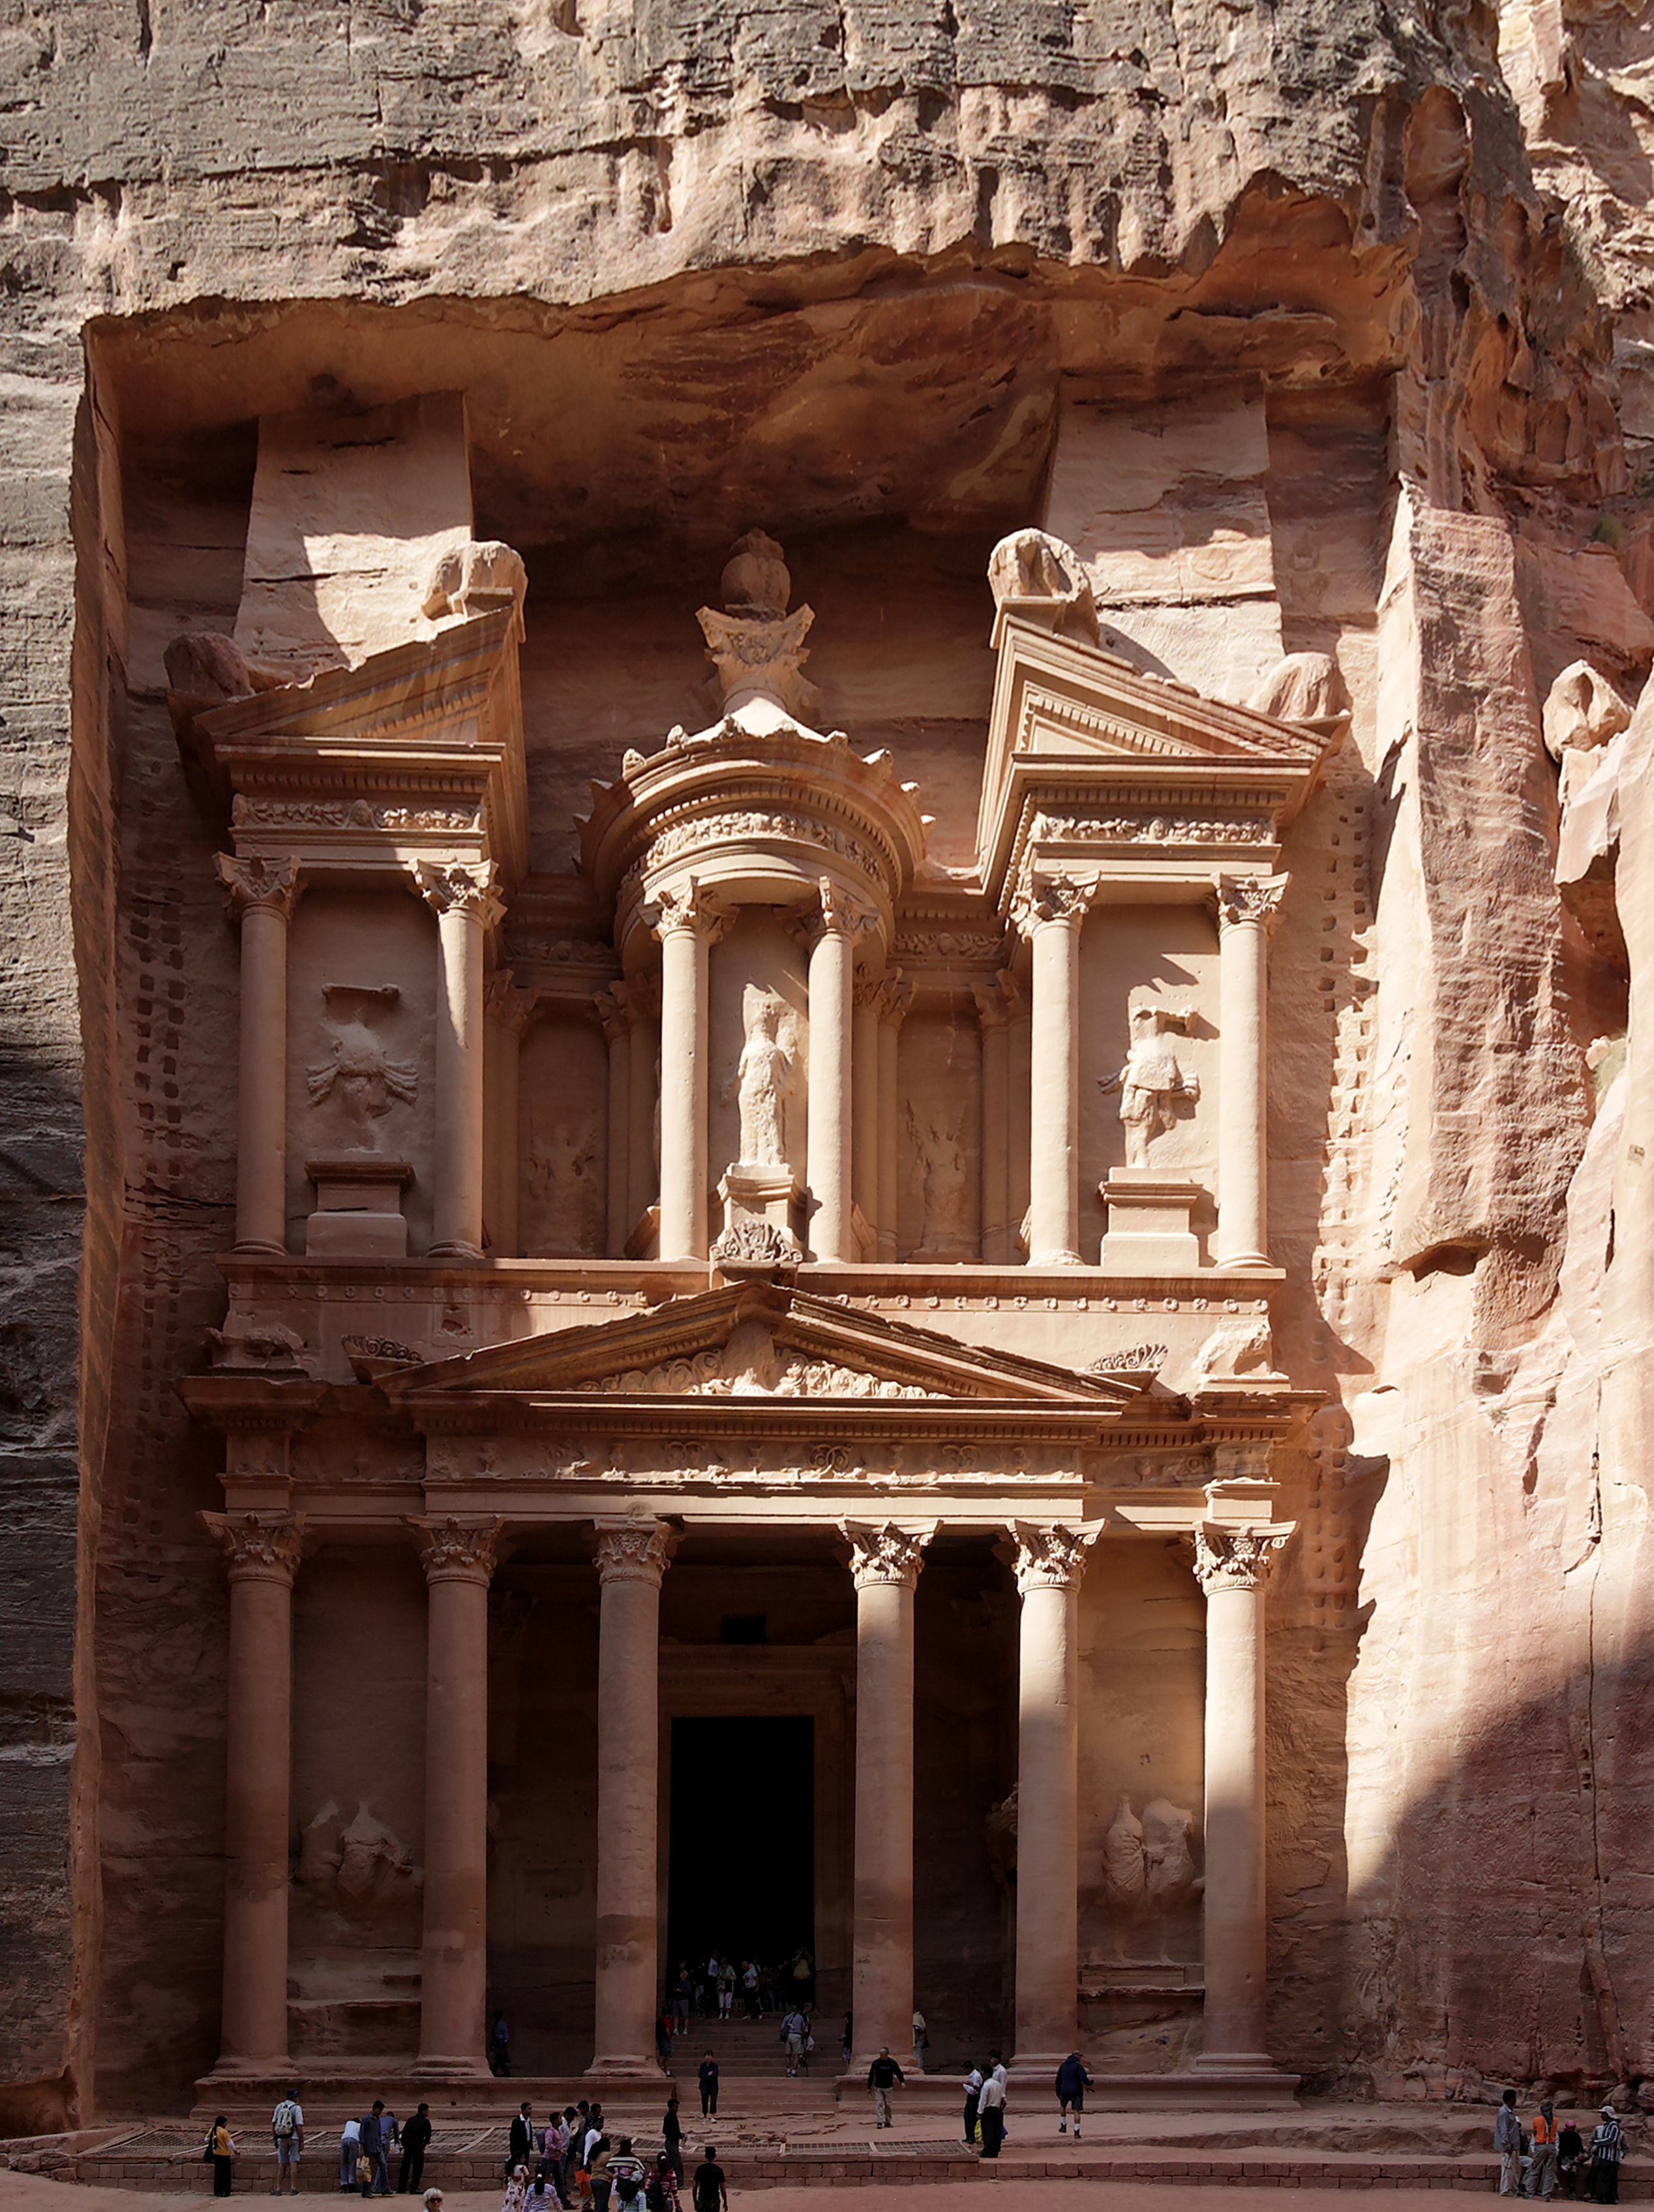 Treasury, Petra (Wadi Musa) Jordan 2.jpg - Treasury